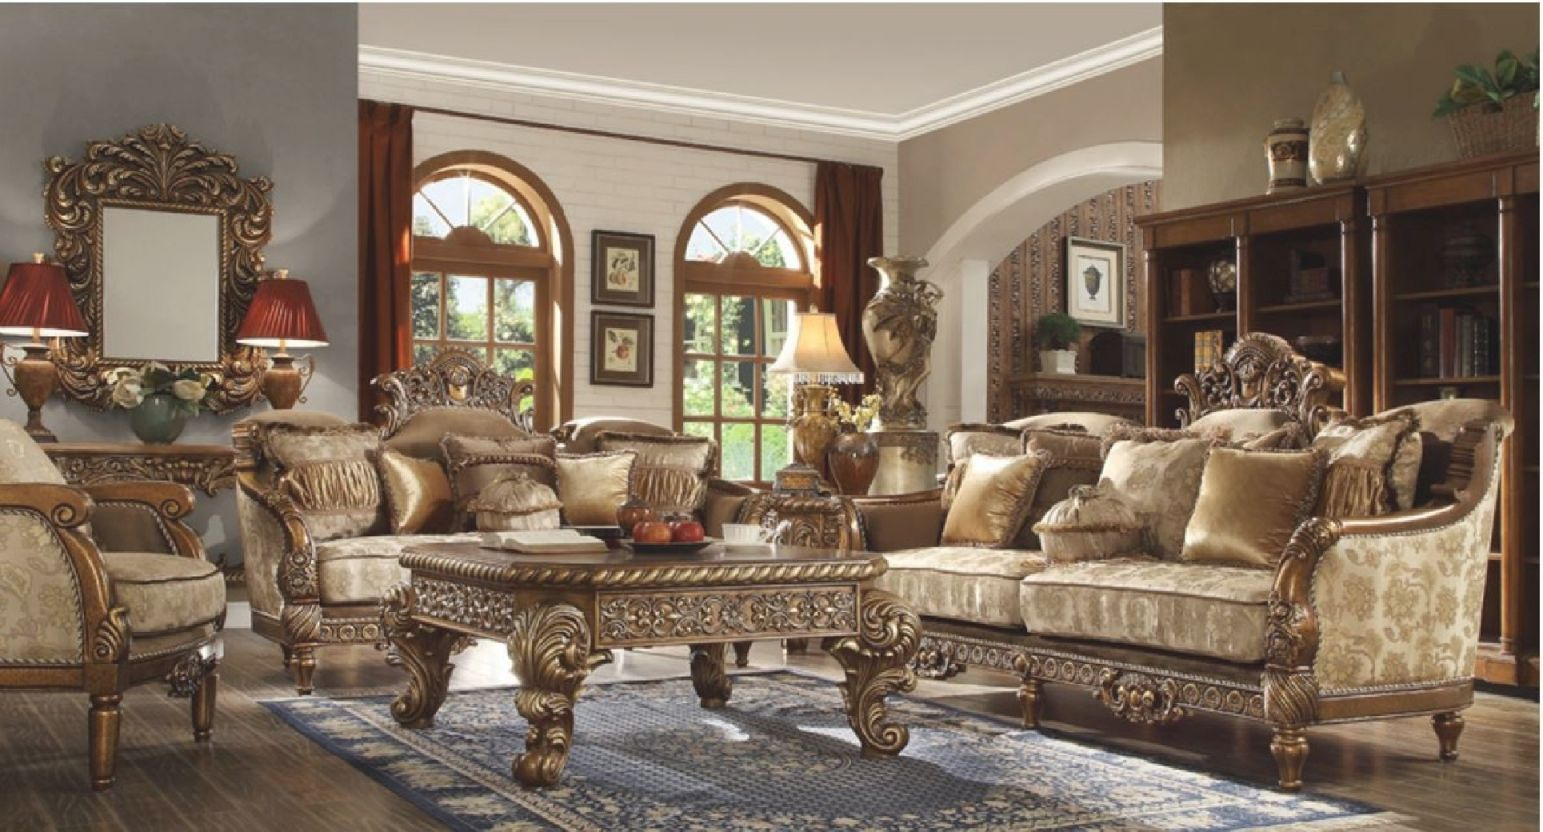 Hd 610 Homey Design Upholstery Living Room Set Victorian, European & Classic Design Sofa Set within Unique Victorian Living Room Furniture